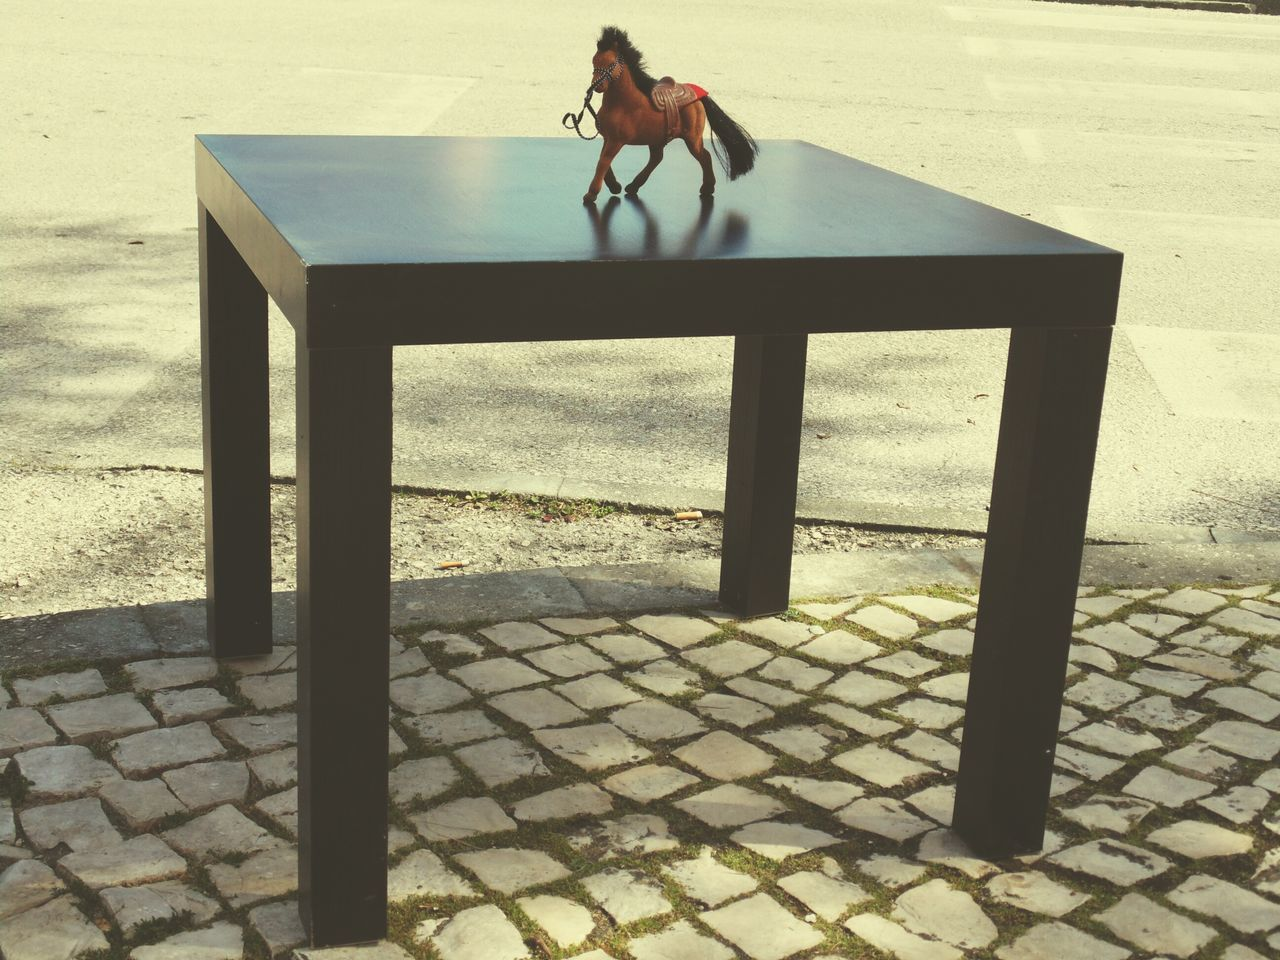 How I See My World Toy Photography Horse Toy Black Table Table Outdoors Zebra Crossing Asfalt Horse Getting Inspired Getting Creative Check This Out Hanging Out